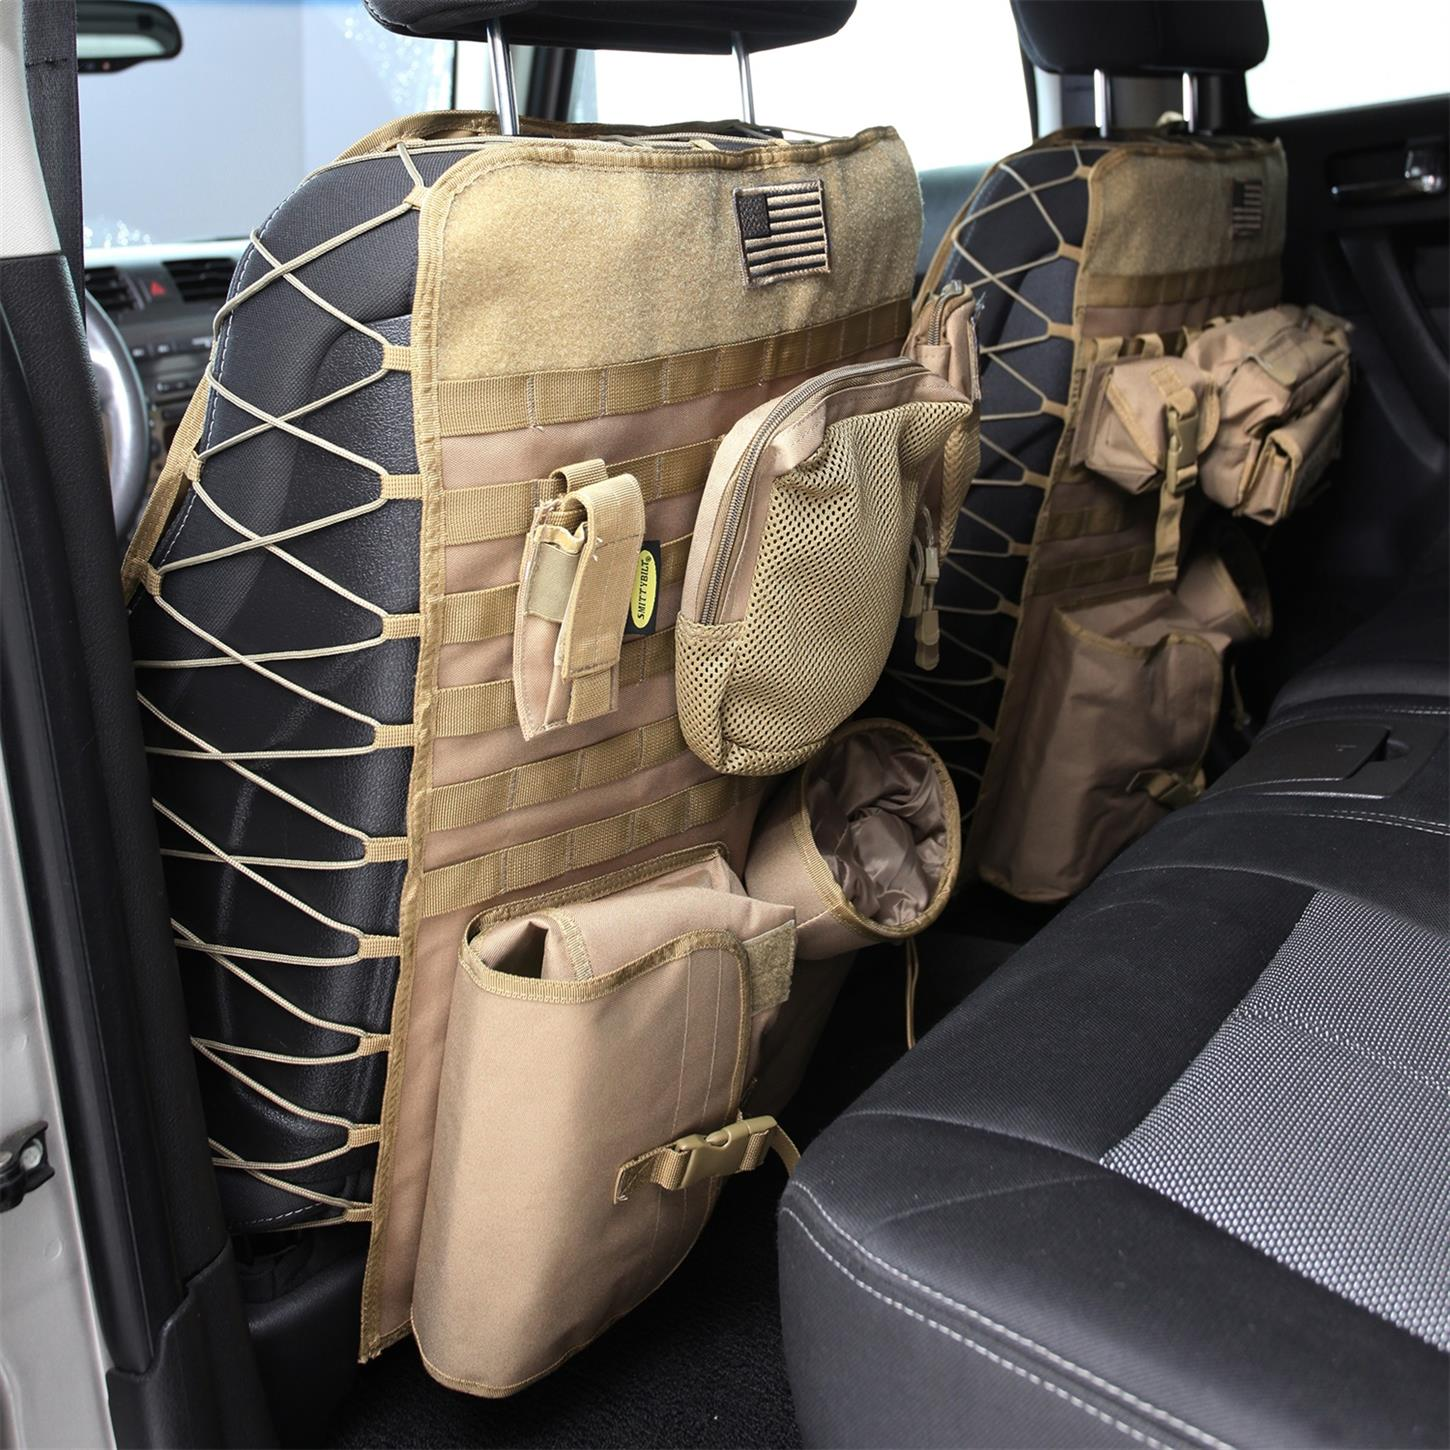 Seat Covers For Trucks >> Smittybilt 5661324 Gear Truck Seat Cover